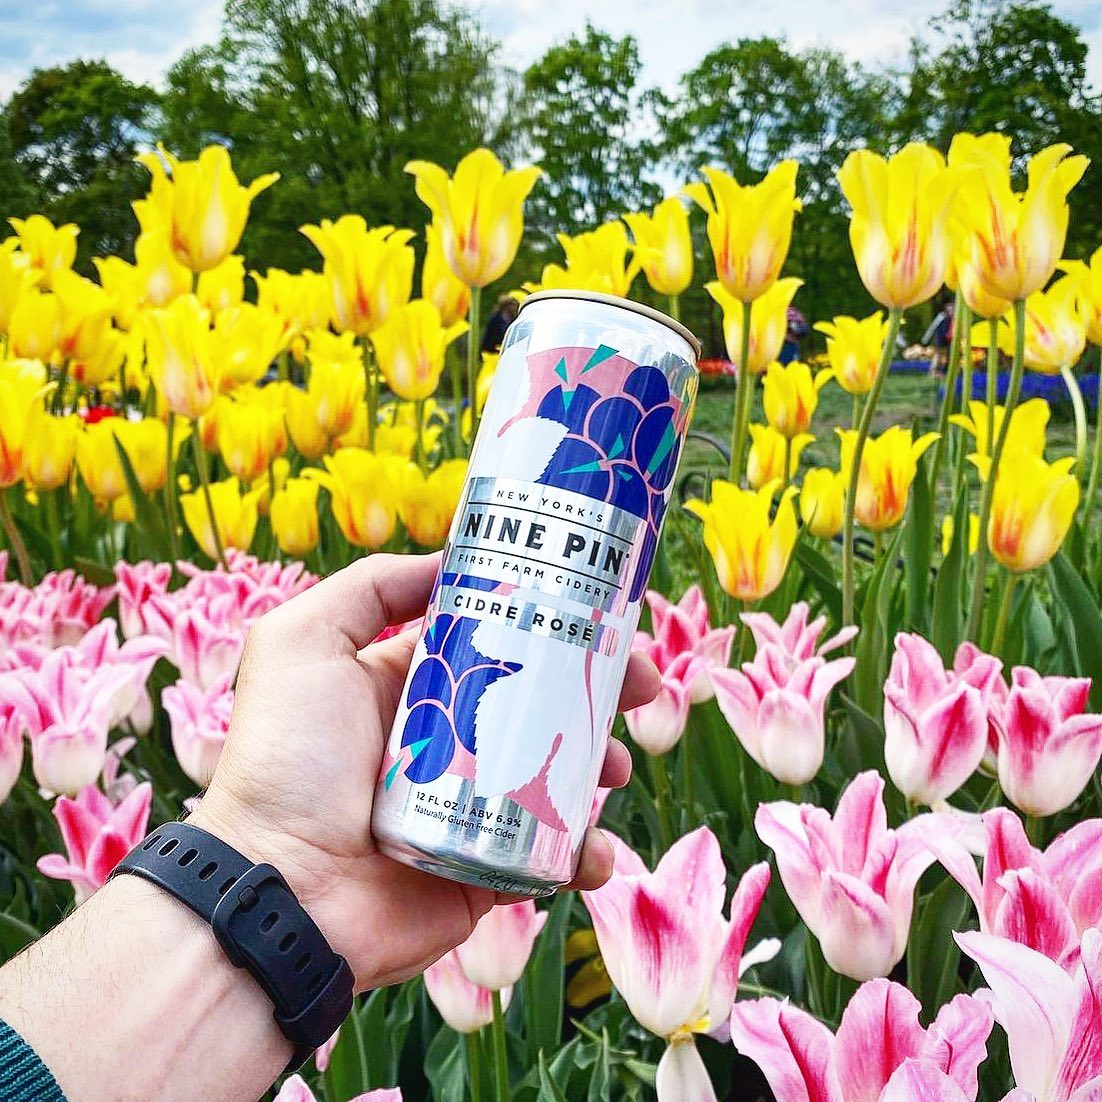 Blue, white and pink Nine Pin Cidre Rosé can in front of yellow and pink tulips